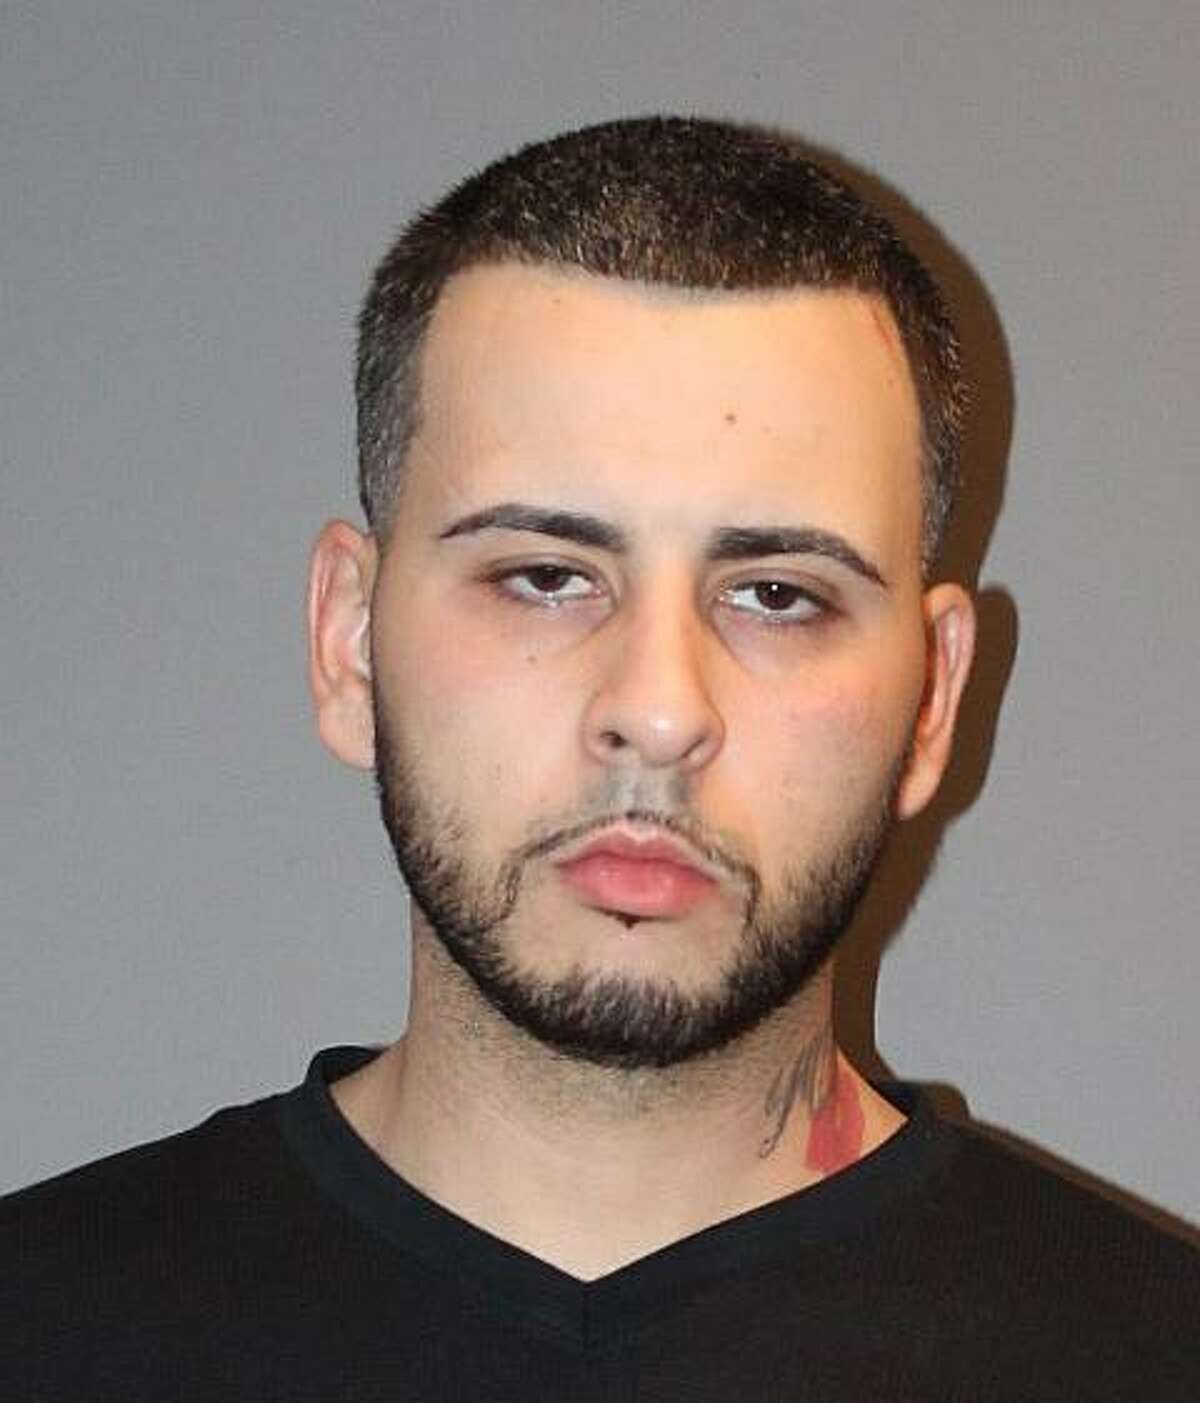 Anthony Velez, 25, of Bridgeport, Conn., was charged with possession with intent to sell heroin, possession with intent to sell crack cocaine, possession of drug paraphernalia in drug factory situation, possession with intent to sell within 1,500 feet of a school, illegal possession of narcotics (oxycodone hydrochloride), illegal possession of a controlled substance (Alprazolam), illegally obtaining or supplying drugs, failure to keep narcotics in its original container and risk of injury to a minor, Stratford police said.